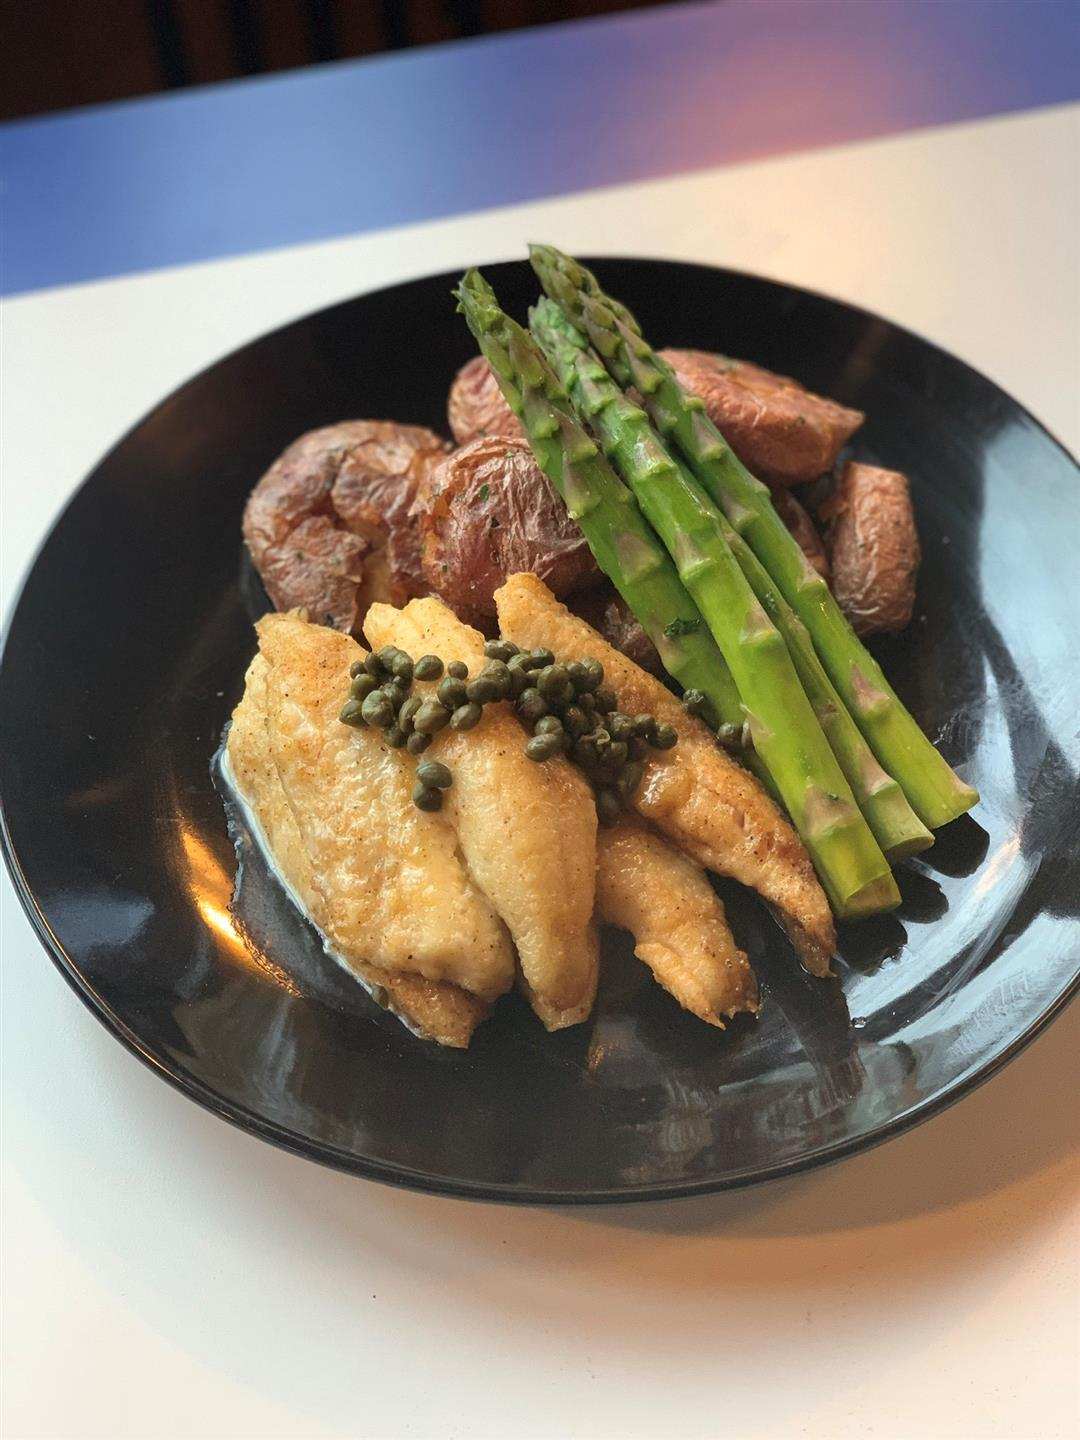 fried perch topped with capers and served with potatoes and asparagus